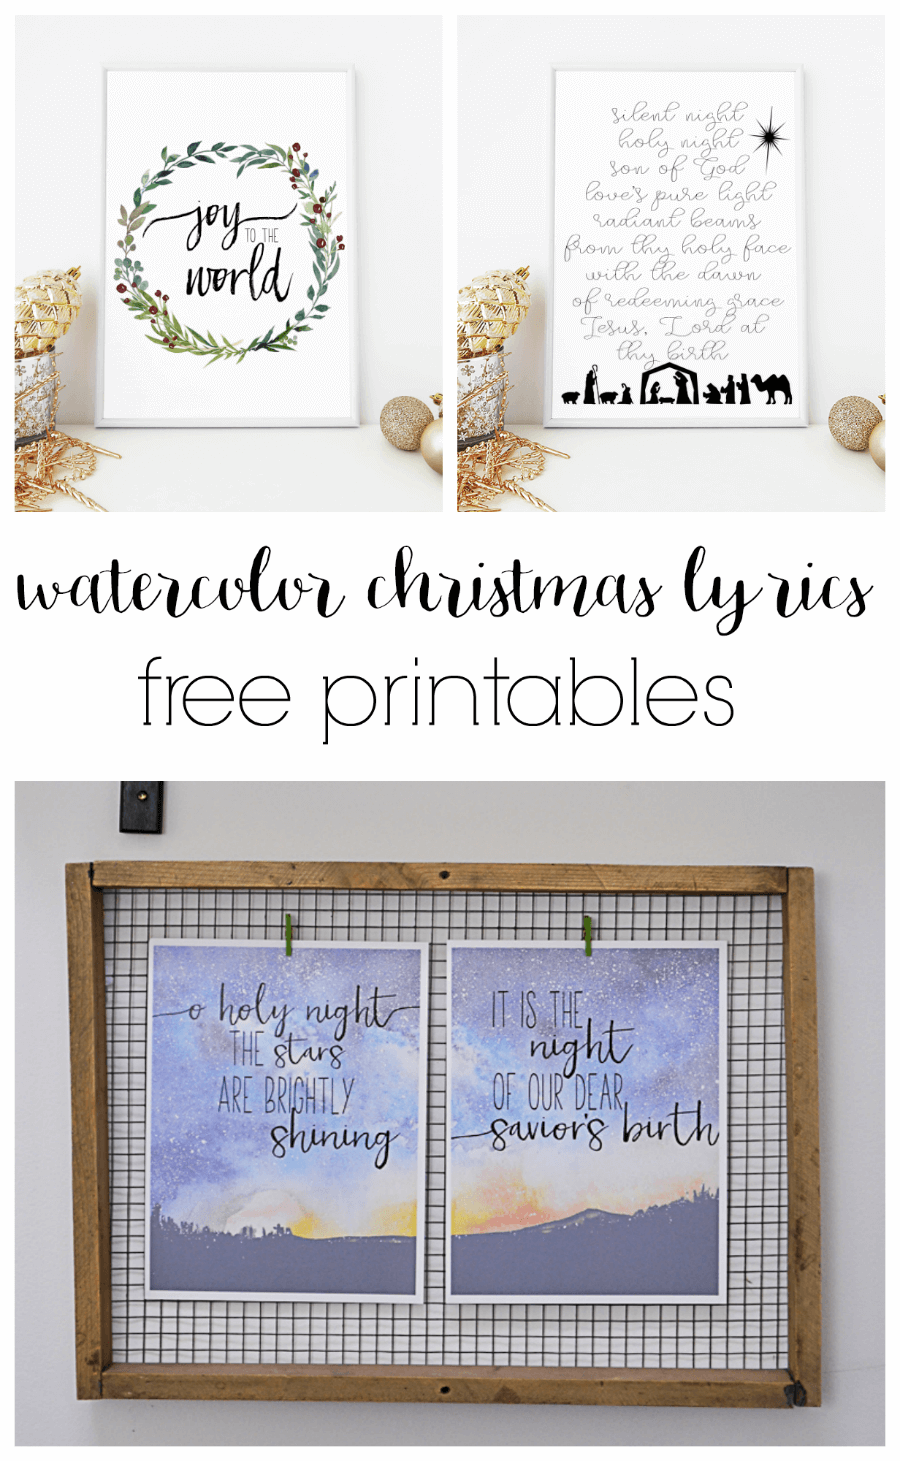 image relating to Silent Night Lyrics Printable identified as cost-free printable watercolor xmas lyrics in the direction of quiet night time